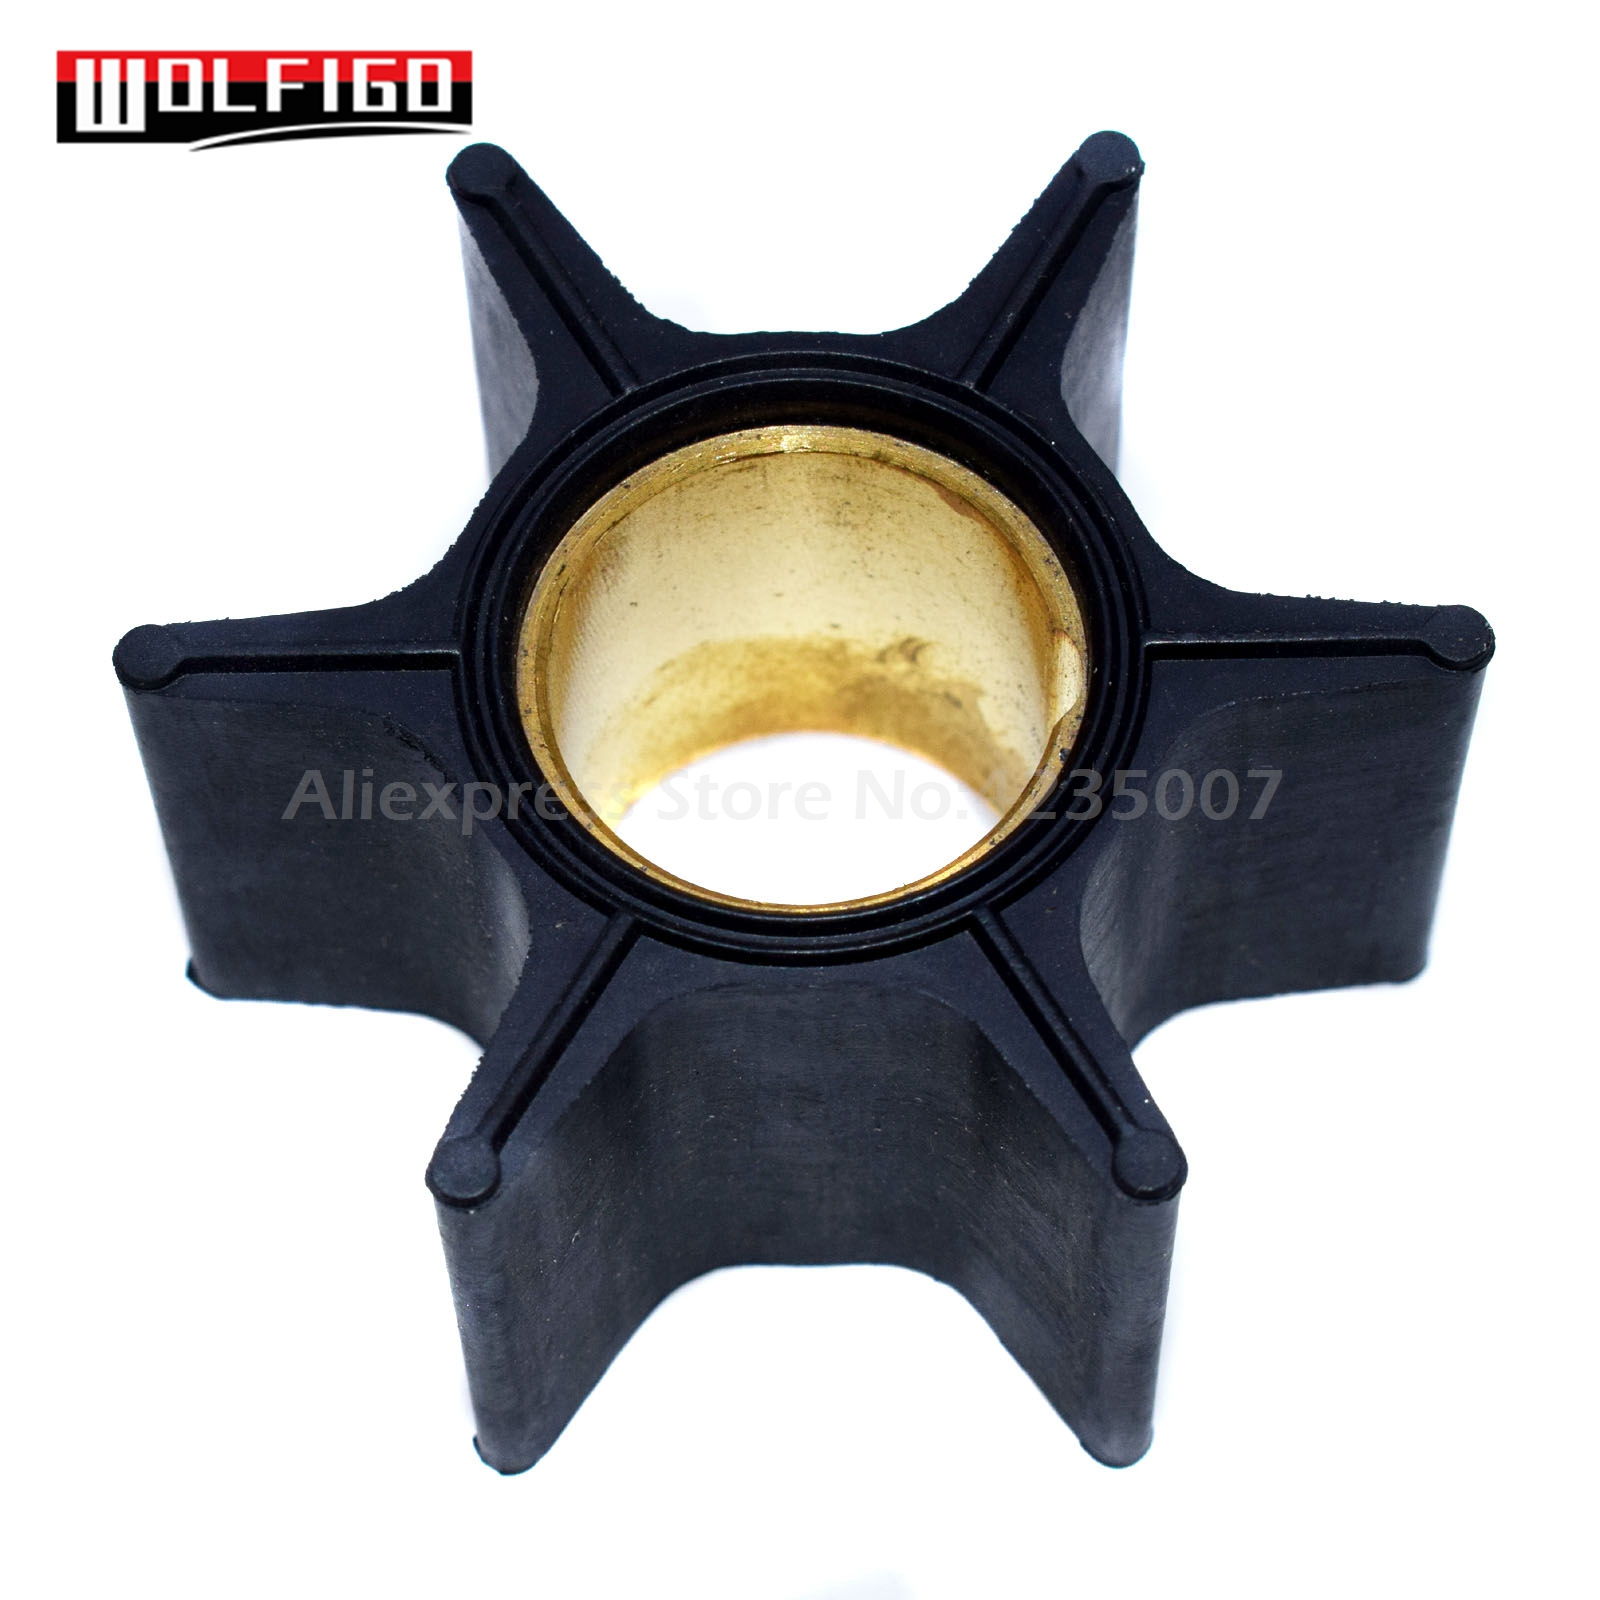 Water Pump Impeller For Mercury MerCruiser 65-225 HP 18-3017 47-89984T4